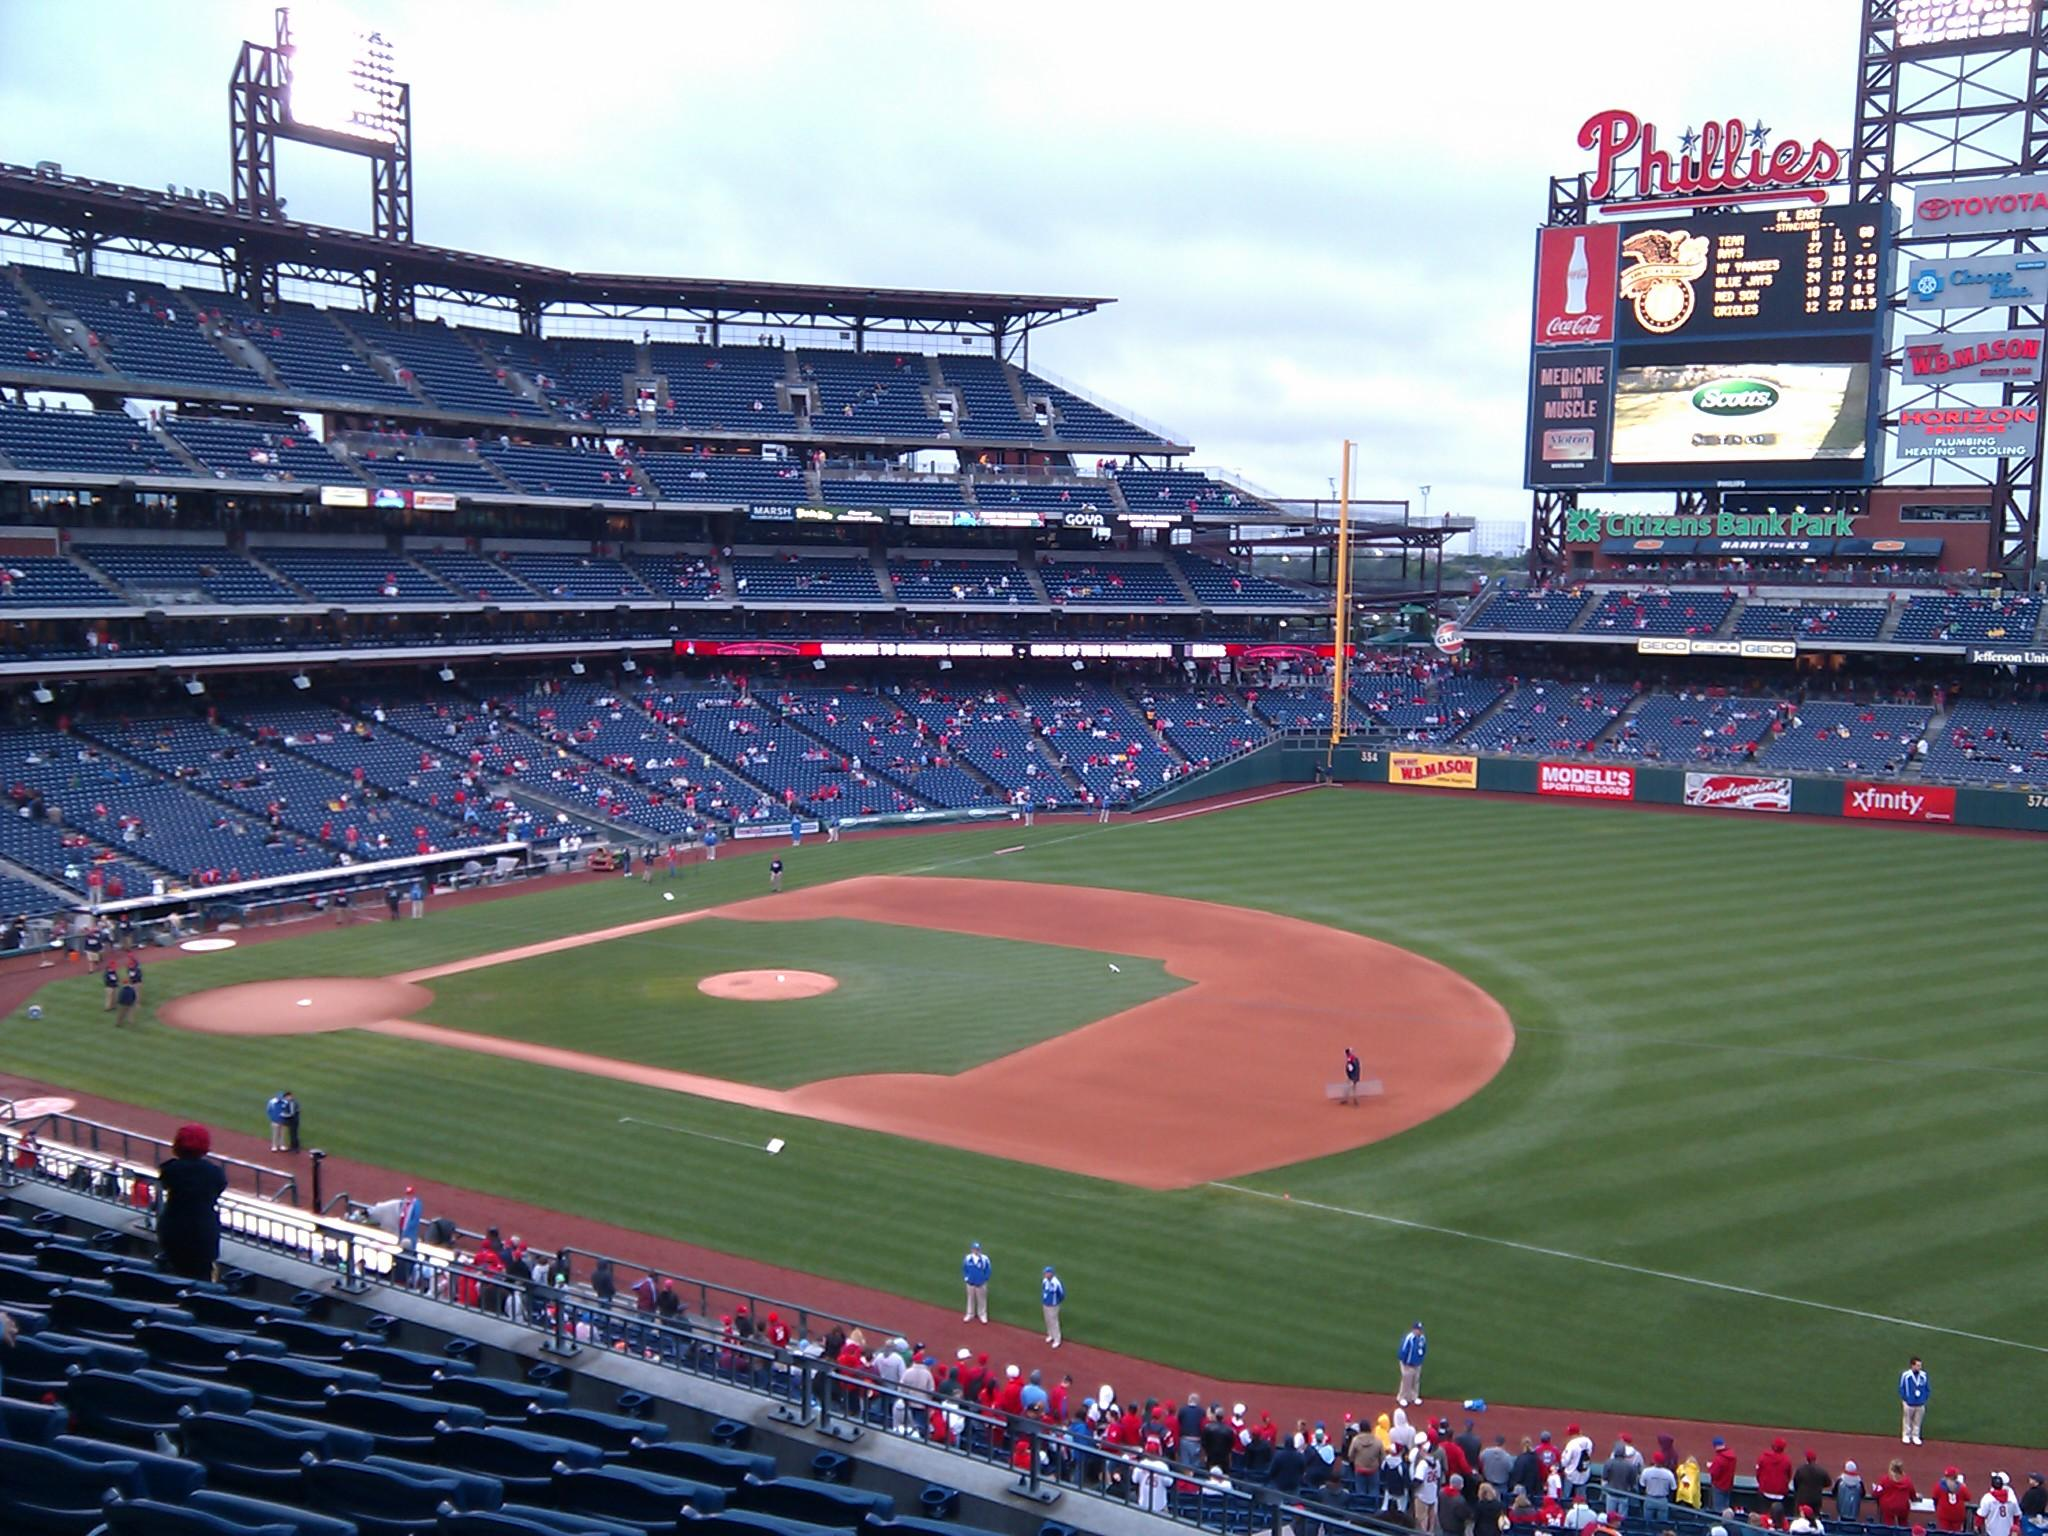 Citizens Bank Park Section 211 Row 9 Seat 1